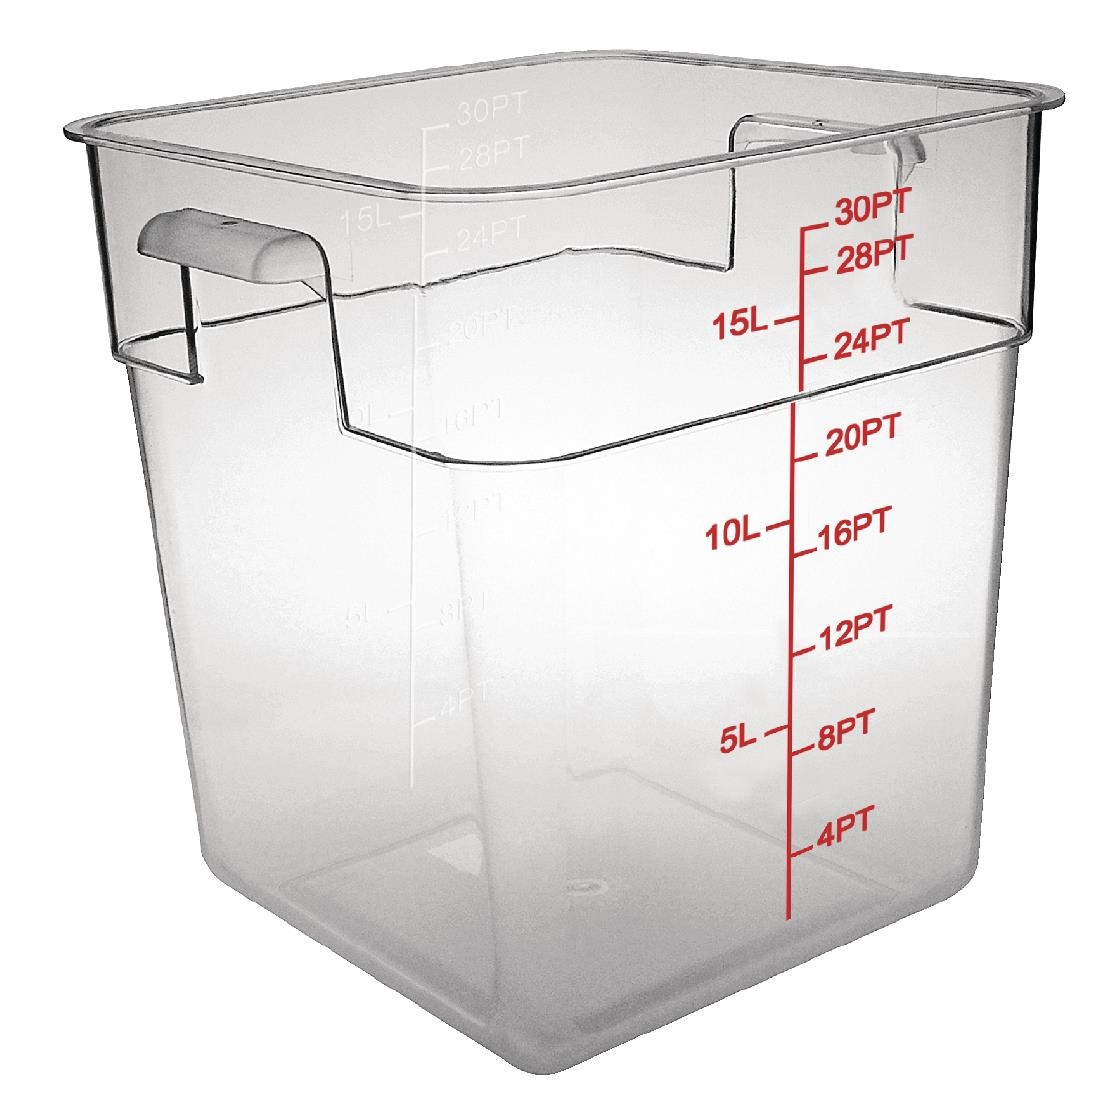 Polycarbonate Square Storage Container - 15Ltr Polycarbonate Square Storage Container - 15Ltr  sc 1 st  Nisbets & Vogue Polycarbonate Square Storage Container 15Ltr - CF025 - Buy ...